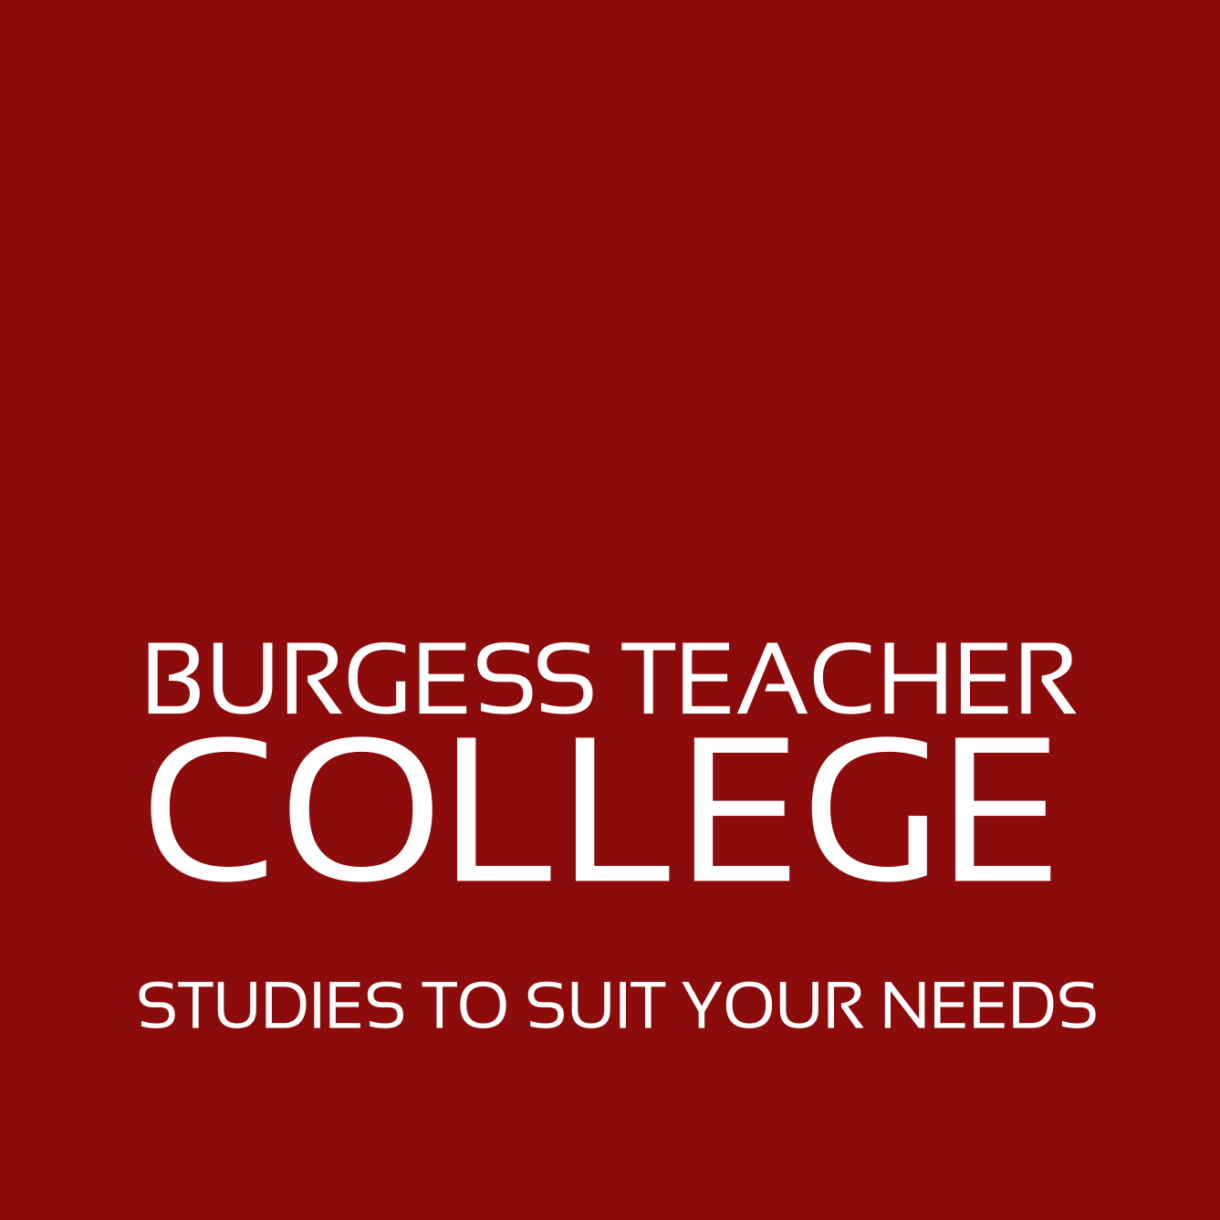 Burgess Teacher College